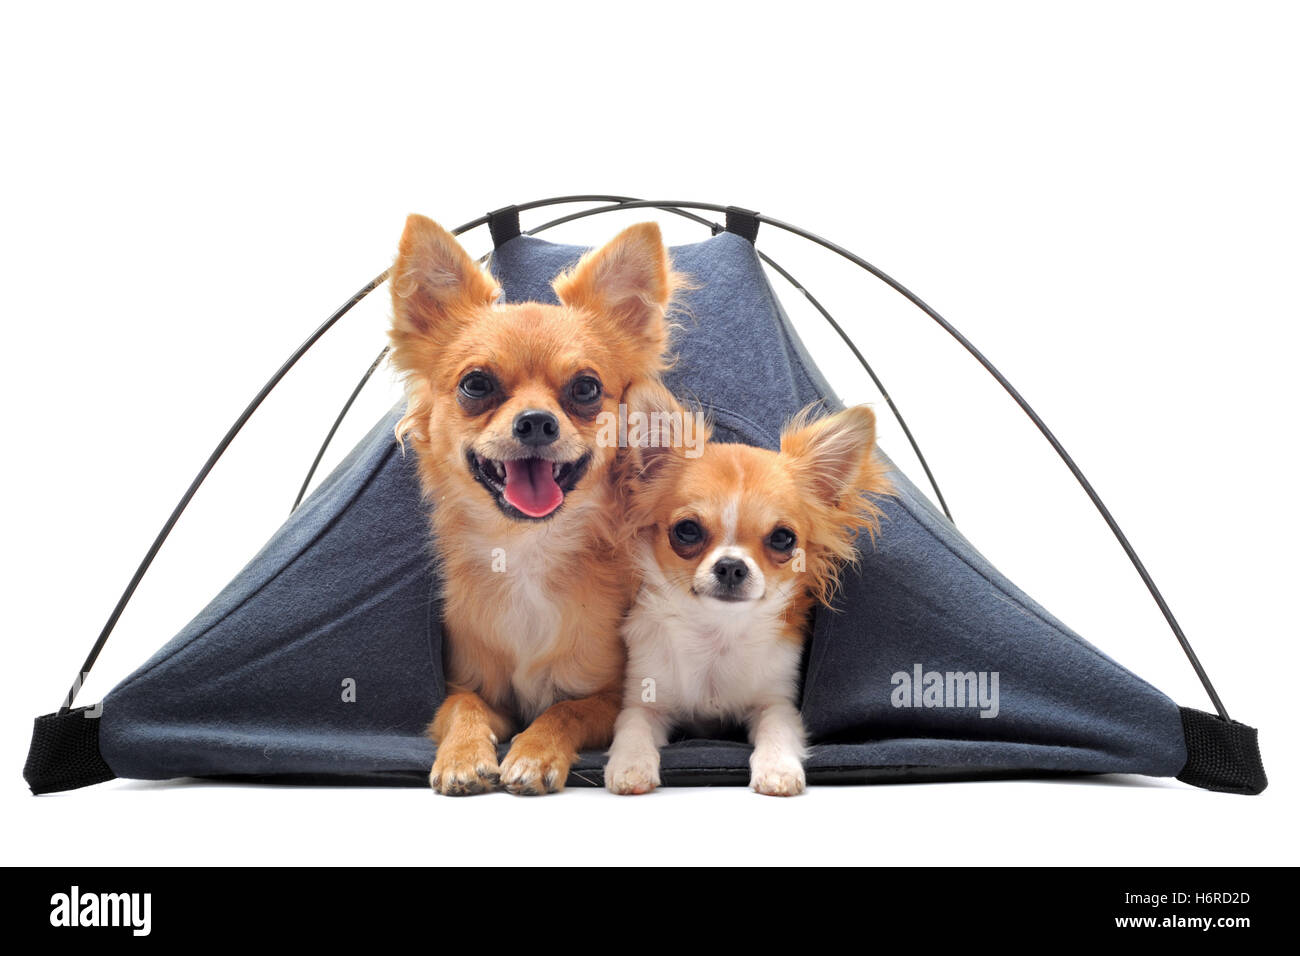 dog dogs adult puppy c&ing tent adults two beautiful beauteously nice holiday vacation holidays vacations animal  sc 1 st  Alamy & Pup Tent Stock Photos u0026 Pup Tent Stock Images - Alamy